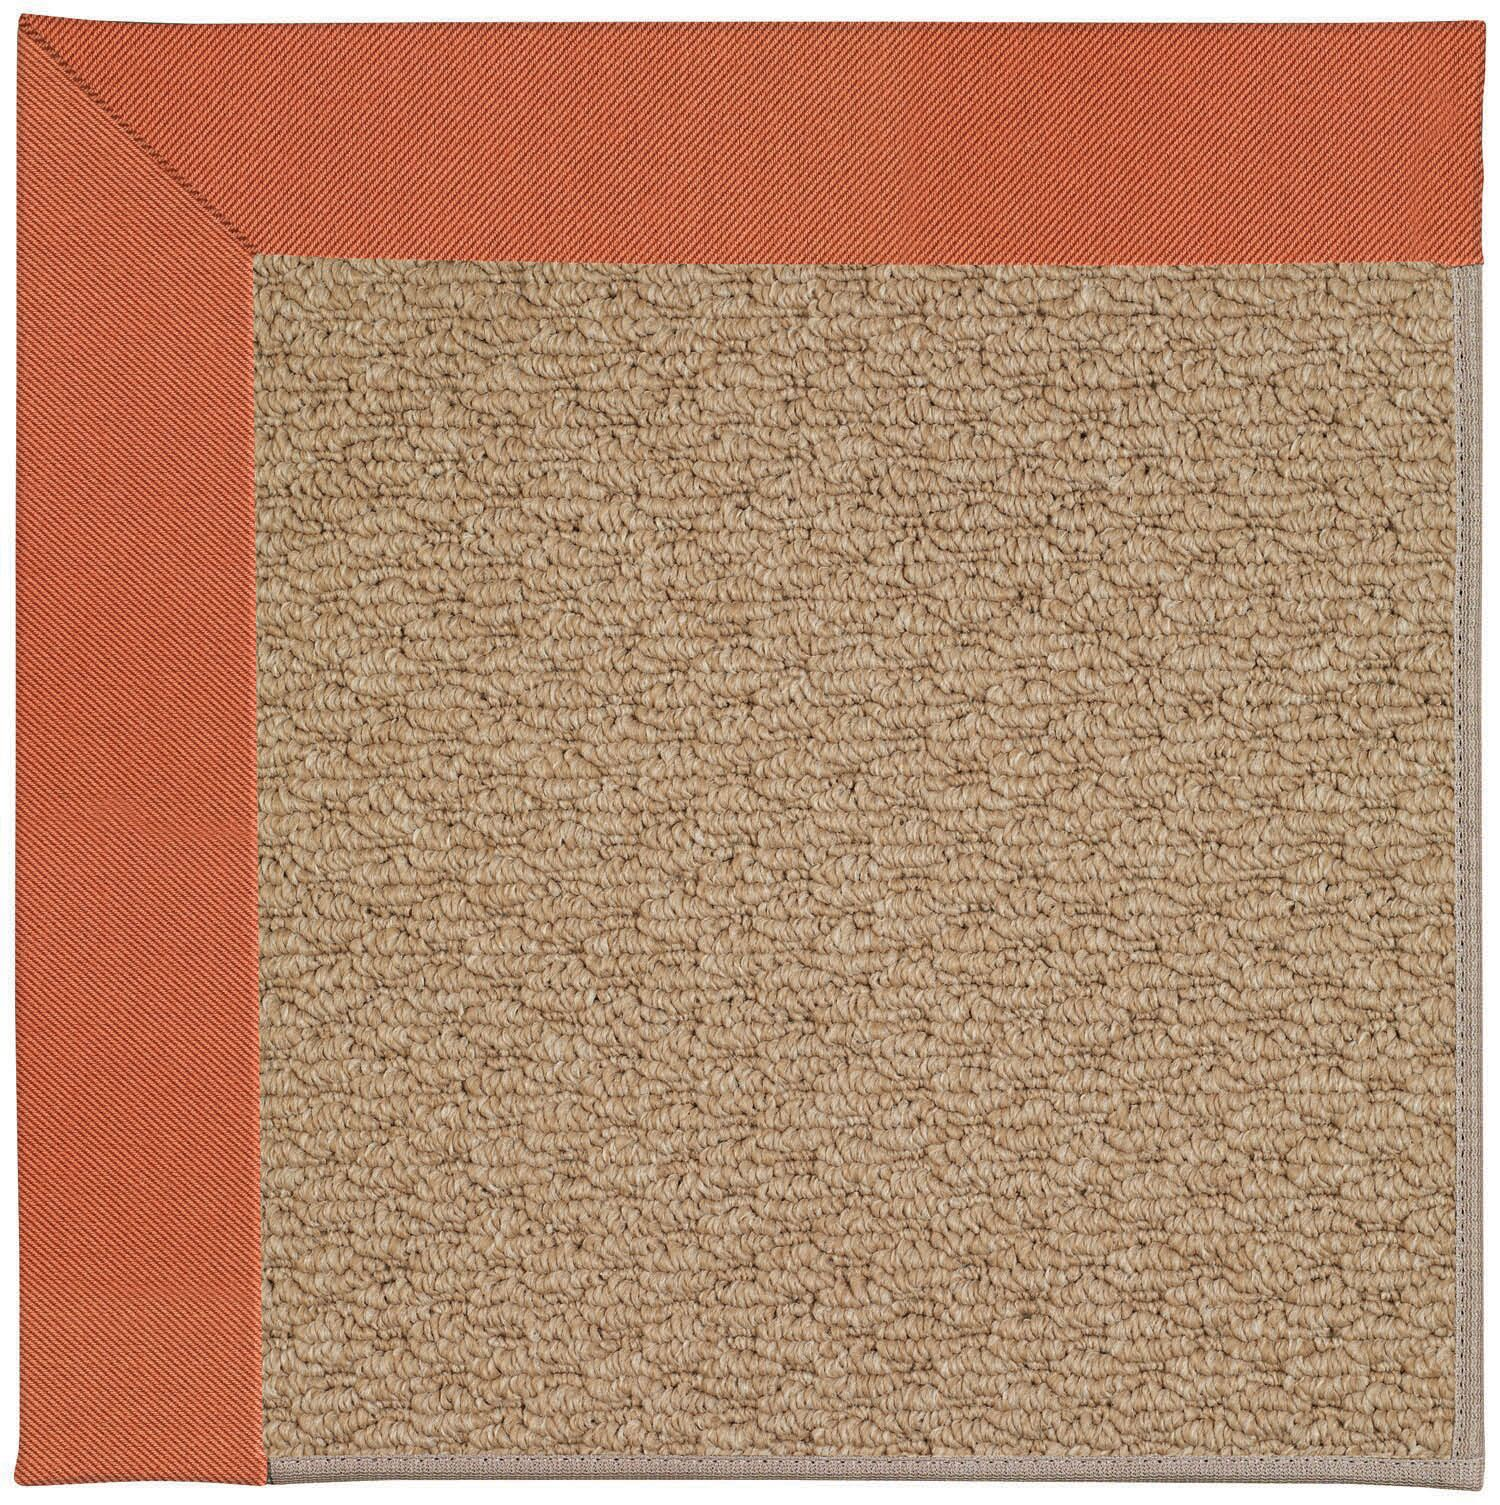 Lisle Machine Woven Clay/Brown Indoor/Outdoor Area Rug Rug Size: Rectangle 8' x 10'